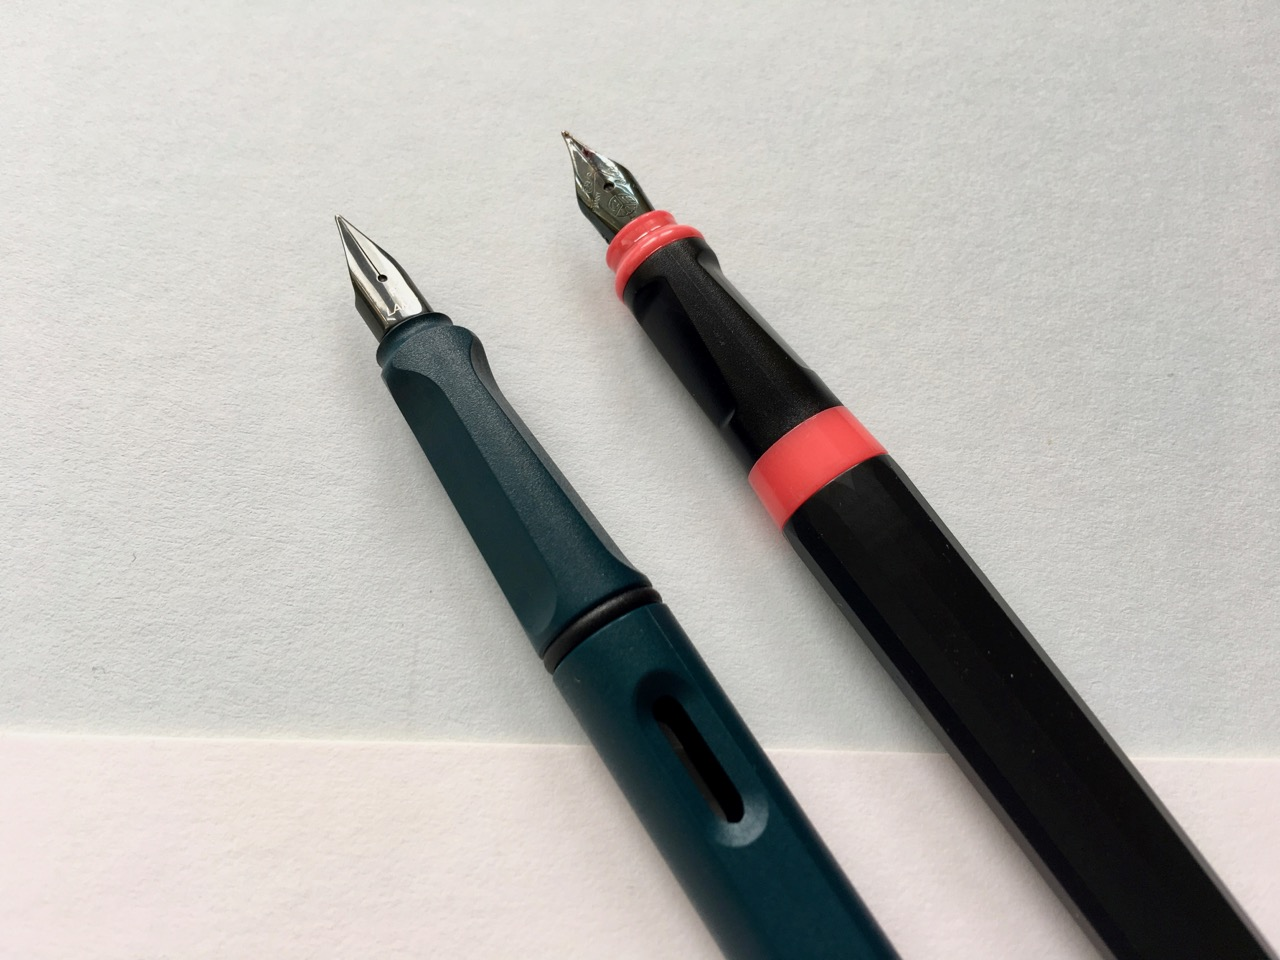 A comparison shot of the Lamy Safri grip section and the Kaweco Perkeo grip.